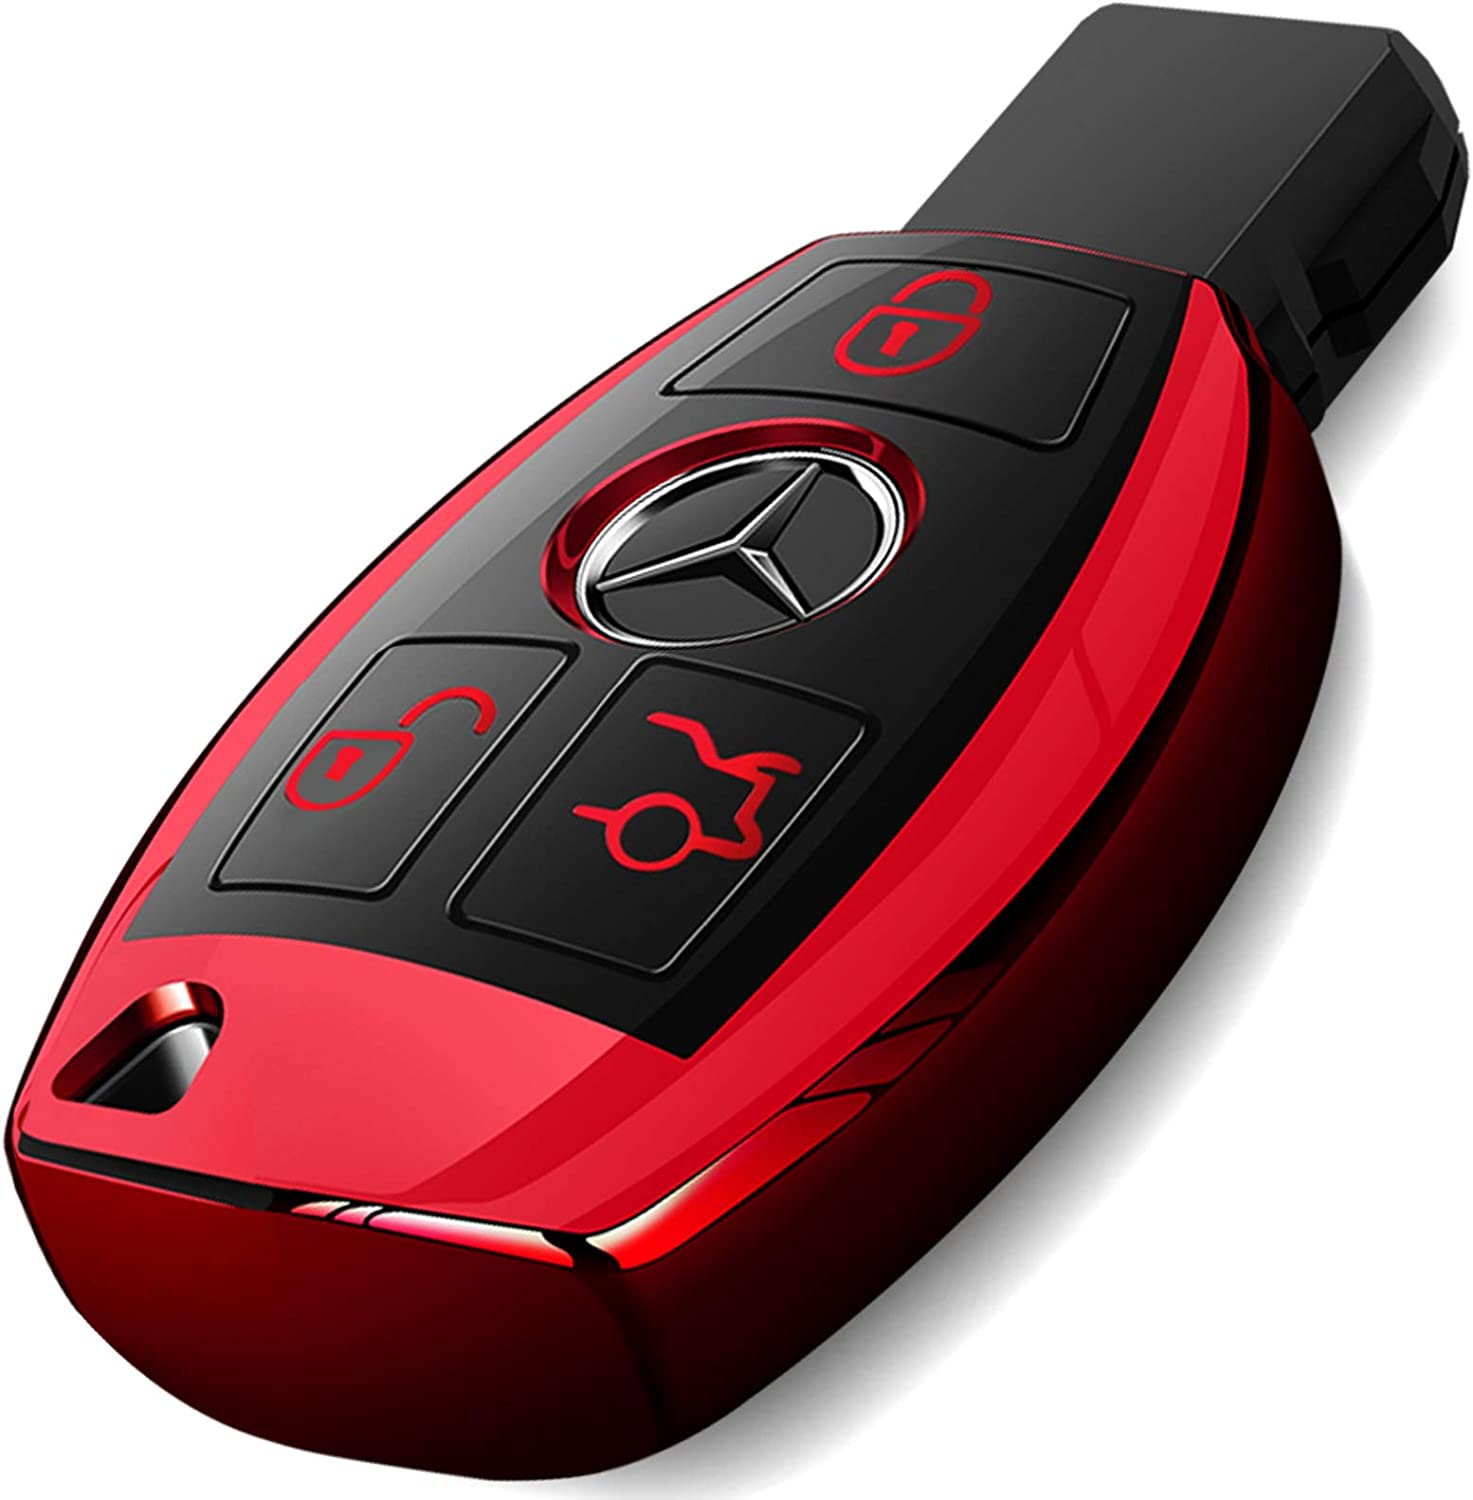 Intermerge for Mercedes Benz Key Fob Cover, Special Soft TPU Key Case Cover Protector Compatible with Mercedes Benz C E G S M GL CLS CLK G Class Keyless Smart Key Fob Case_Red